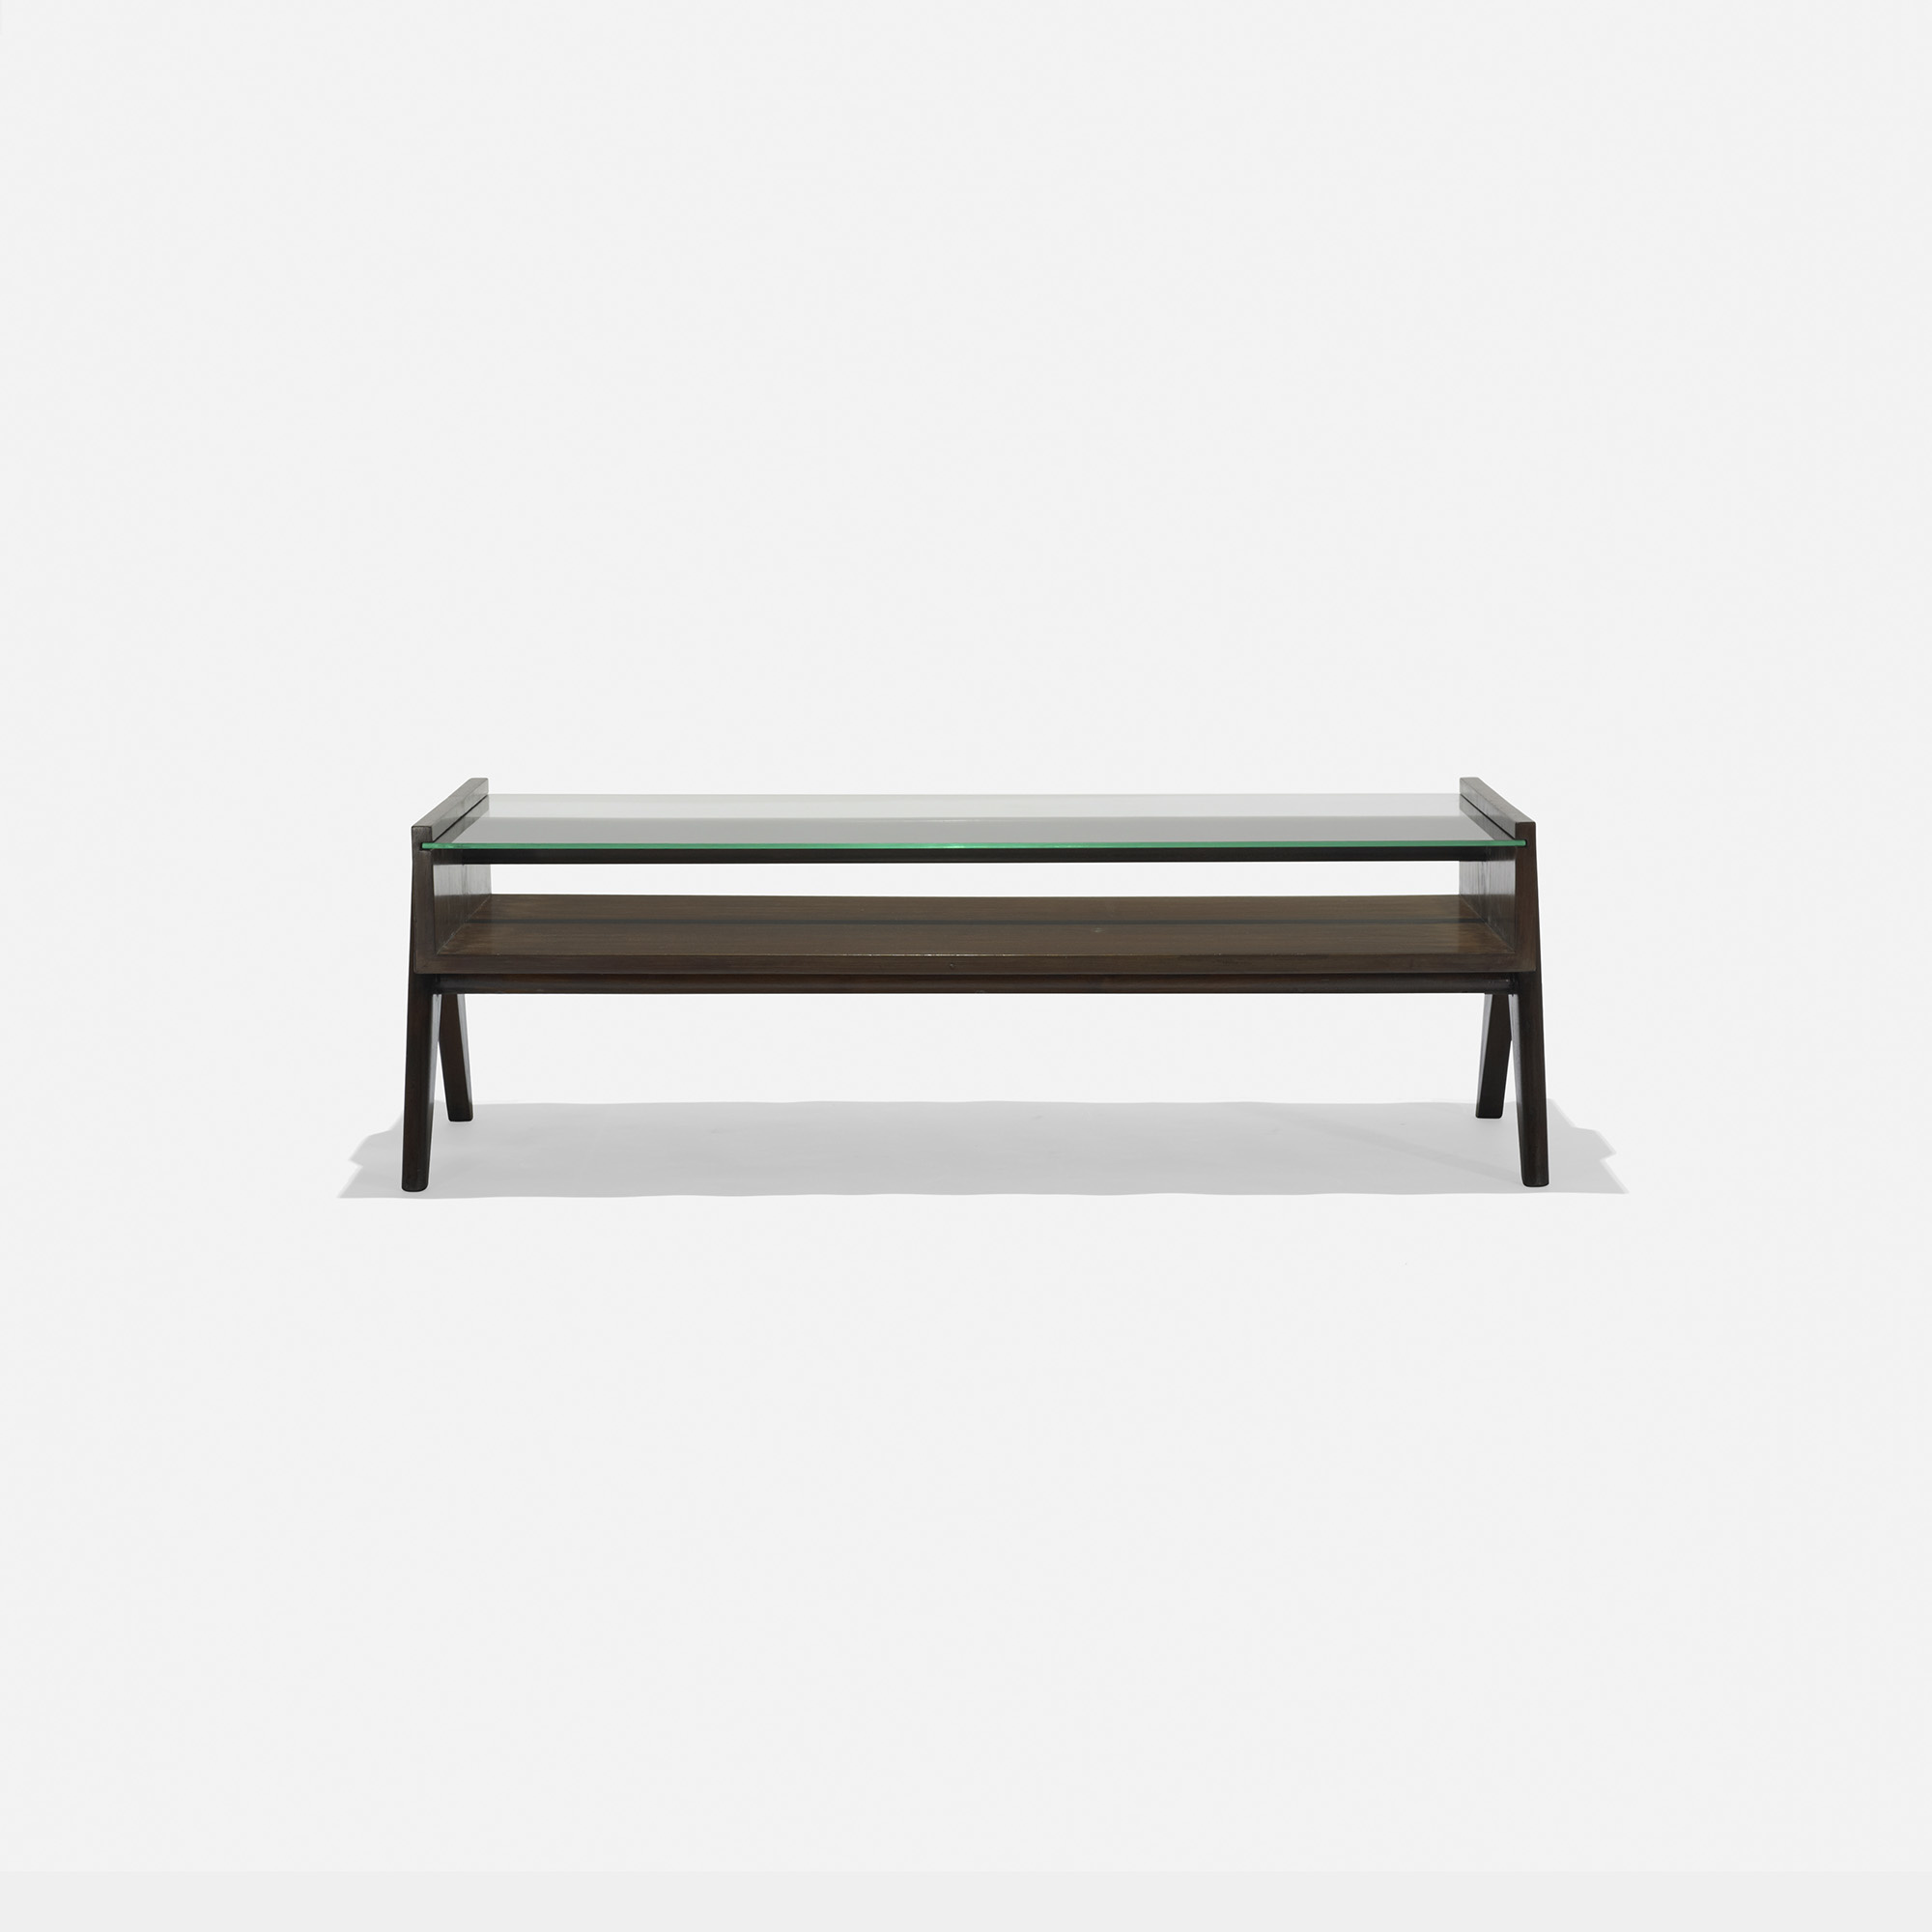 191 PIERRE JEANNERET coffee table from Chandigarh Modern